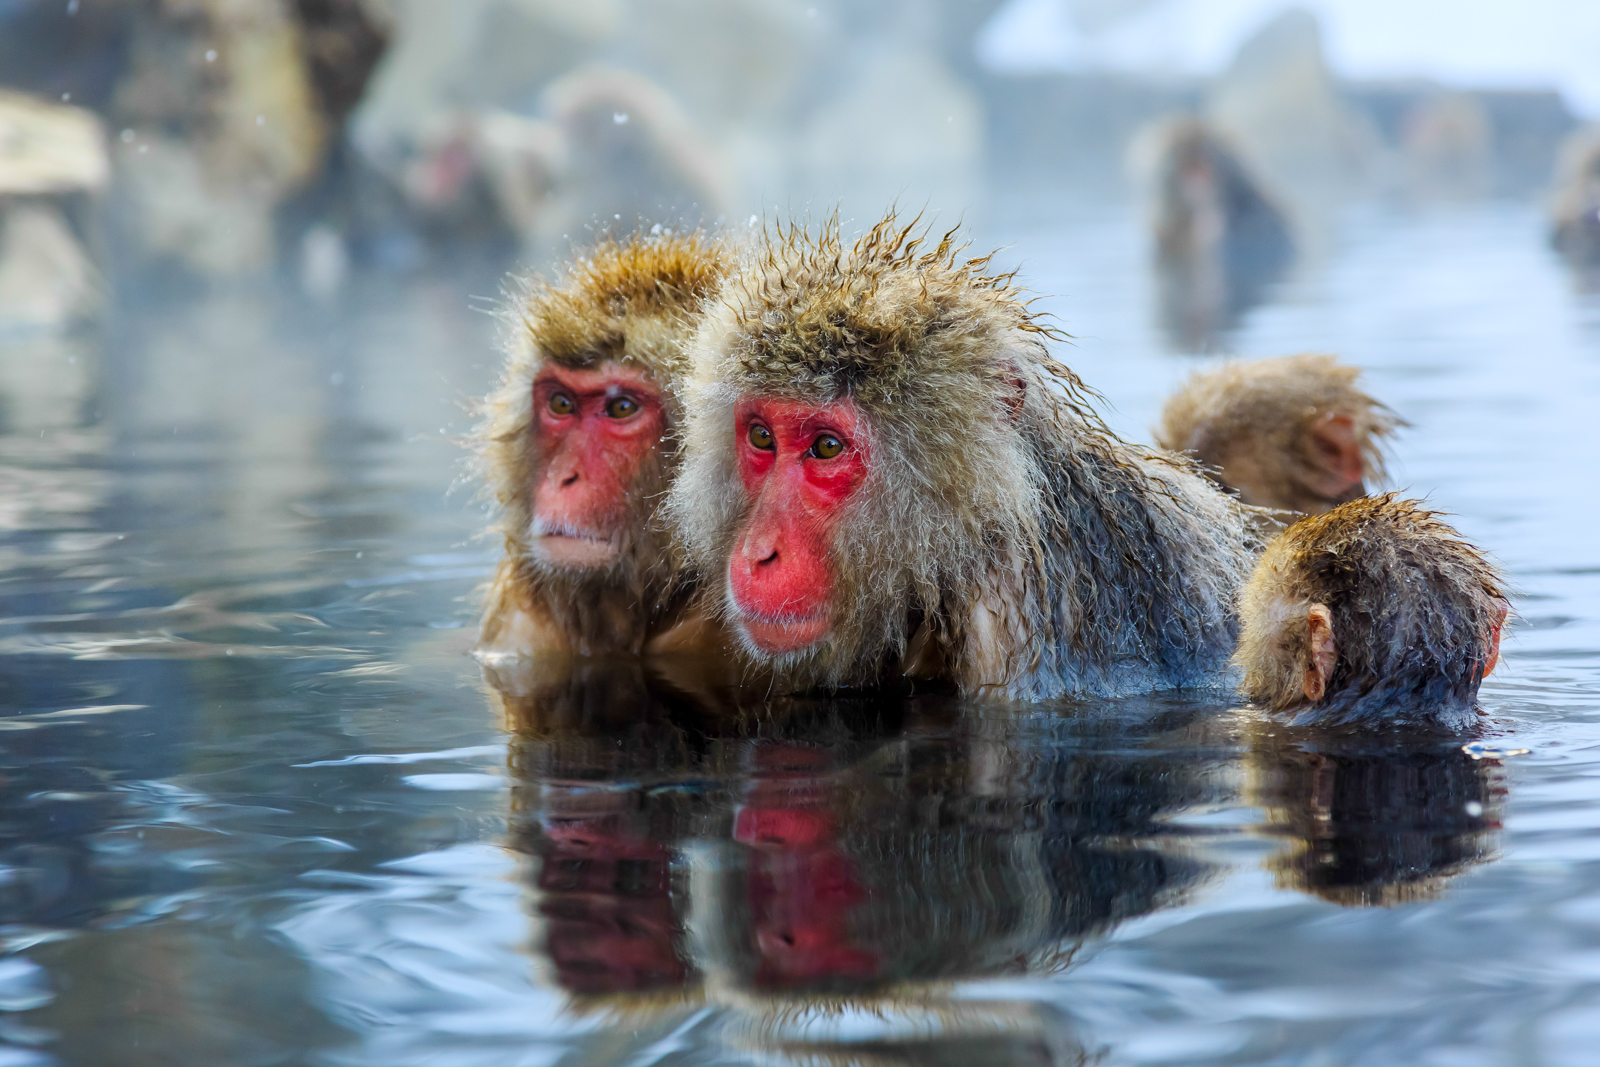 Japan Snow Monkeys - Asia Travel Specialists